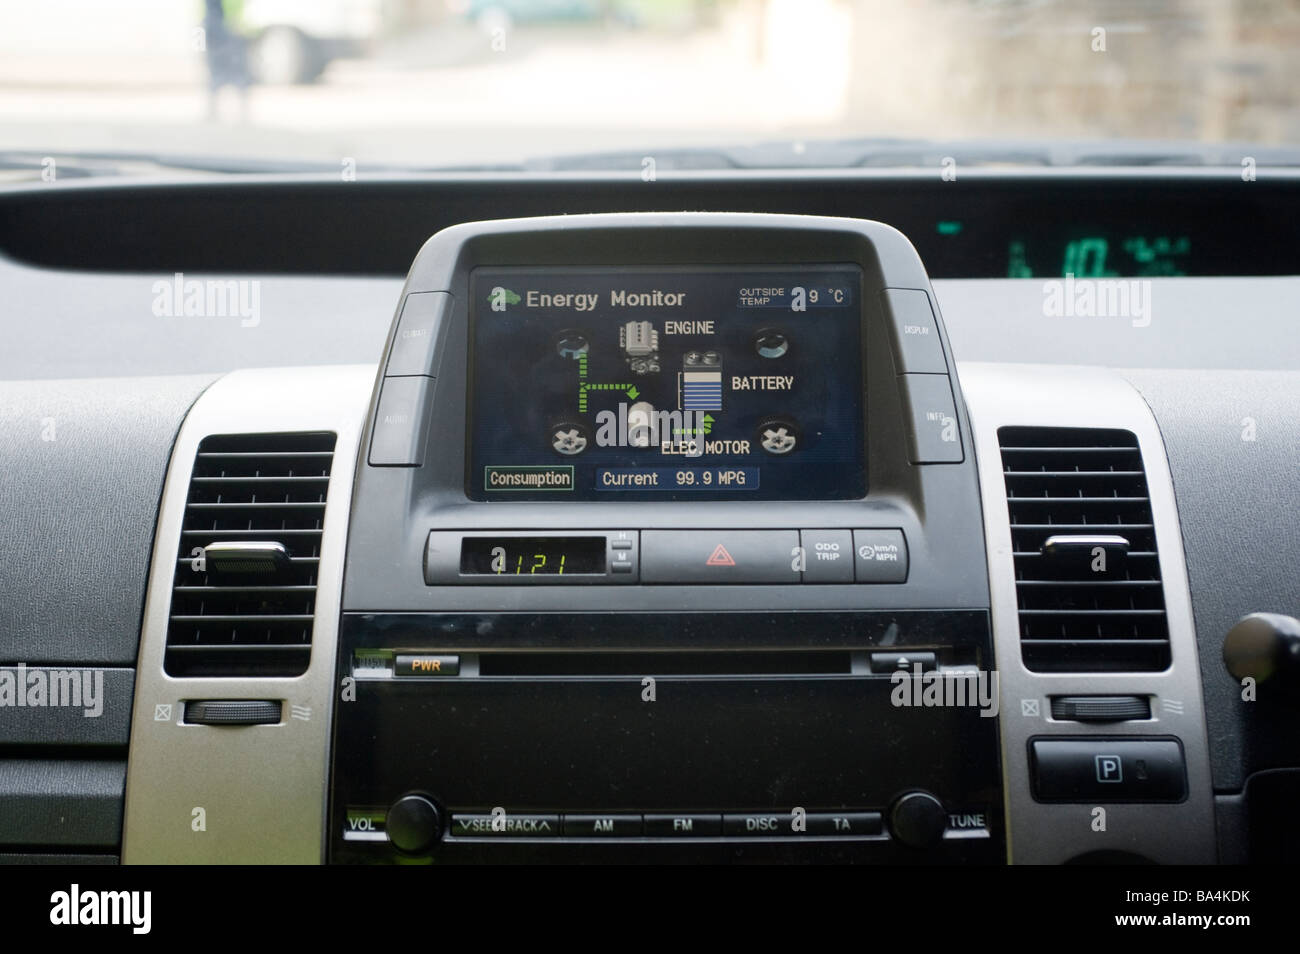 Energy distribution screen on the dashboard of a Toyota prius hybrid car - Stock Image